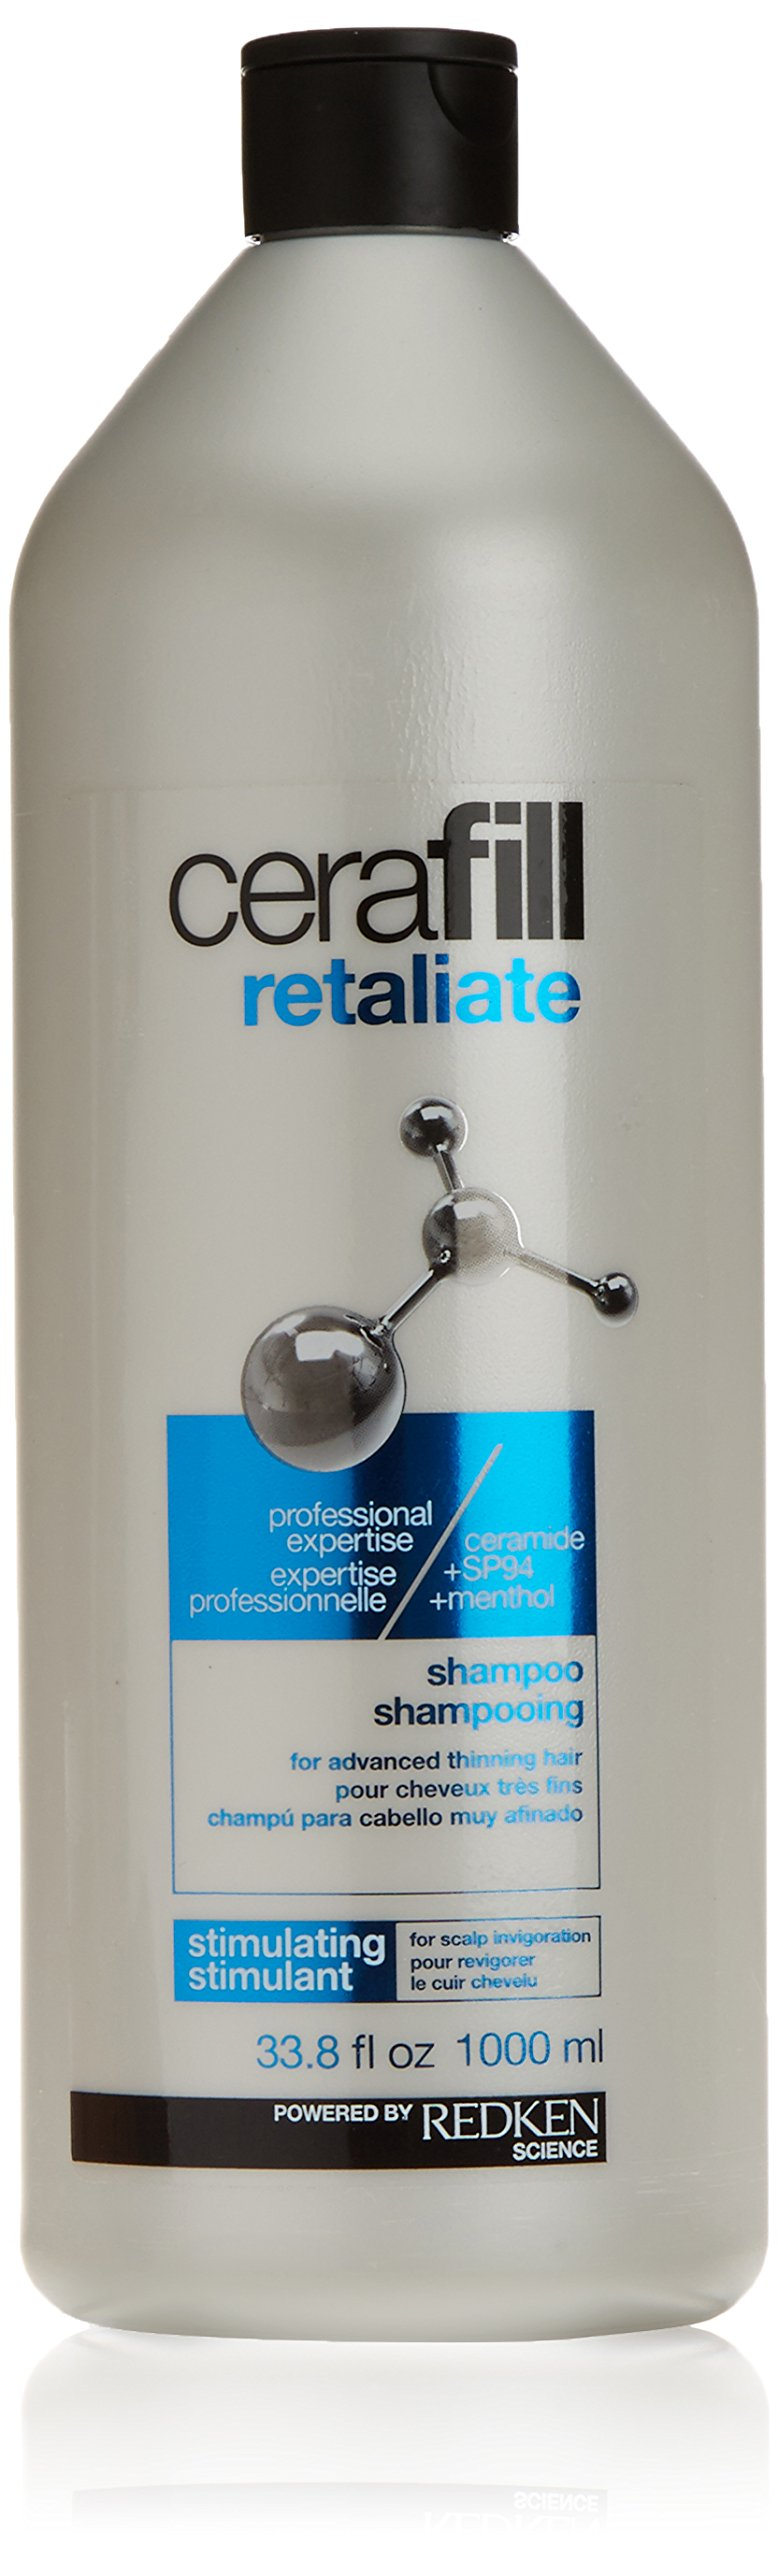 Redken Cerafill Retaliate Stimulating Shampoo (For Advanced Thinning Hair) 1000 Ml 33.8 Fl Ounce by REDKEN